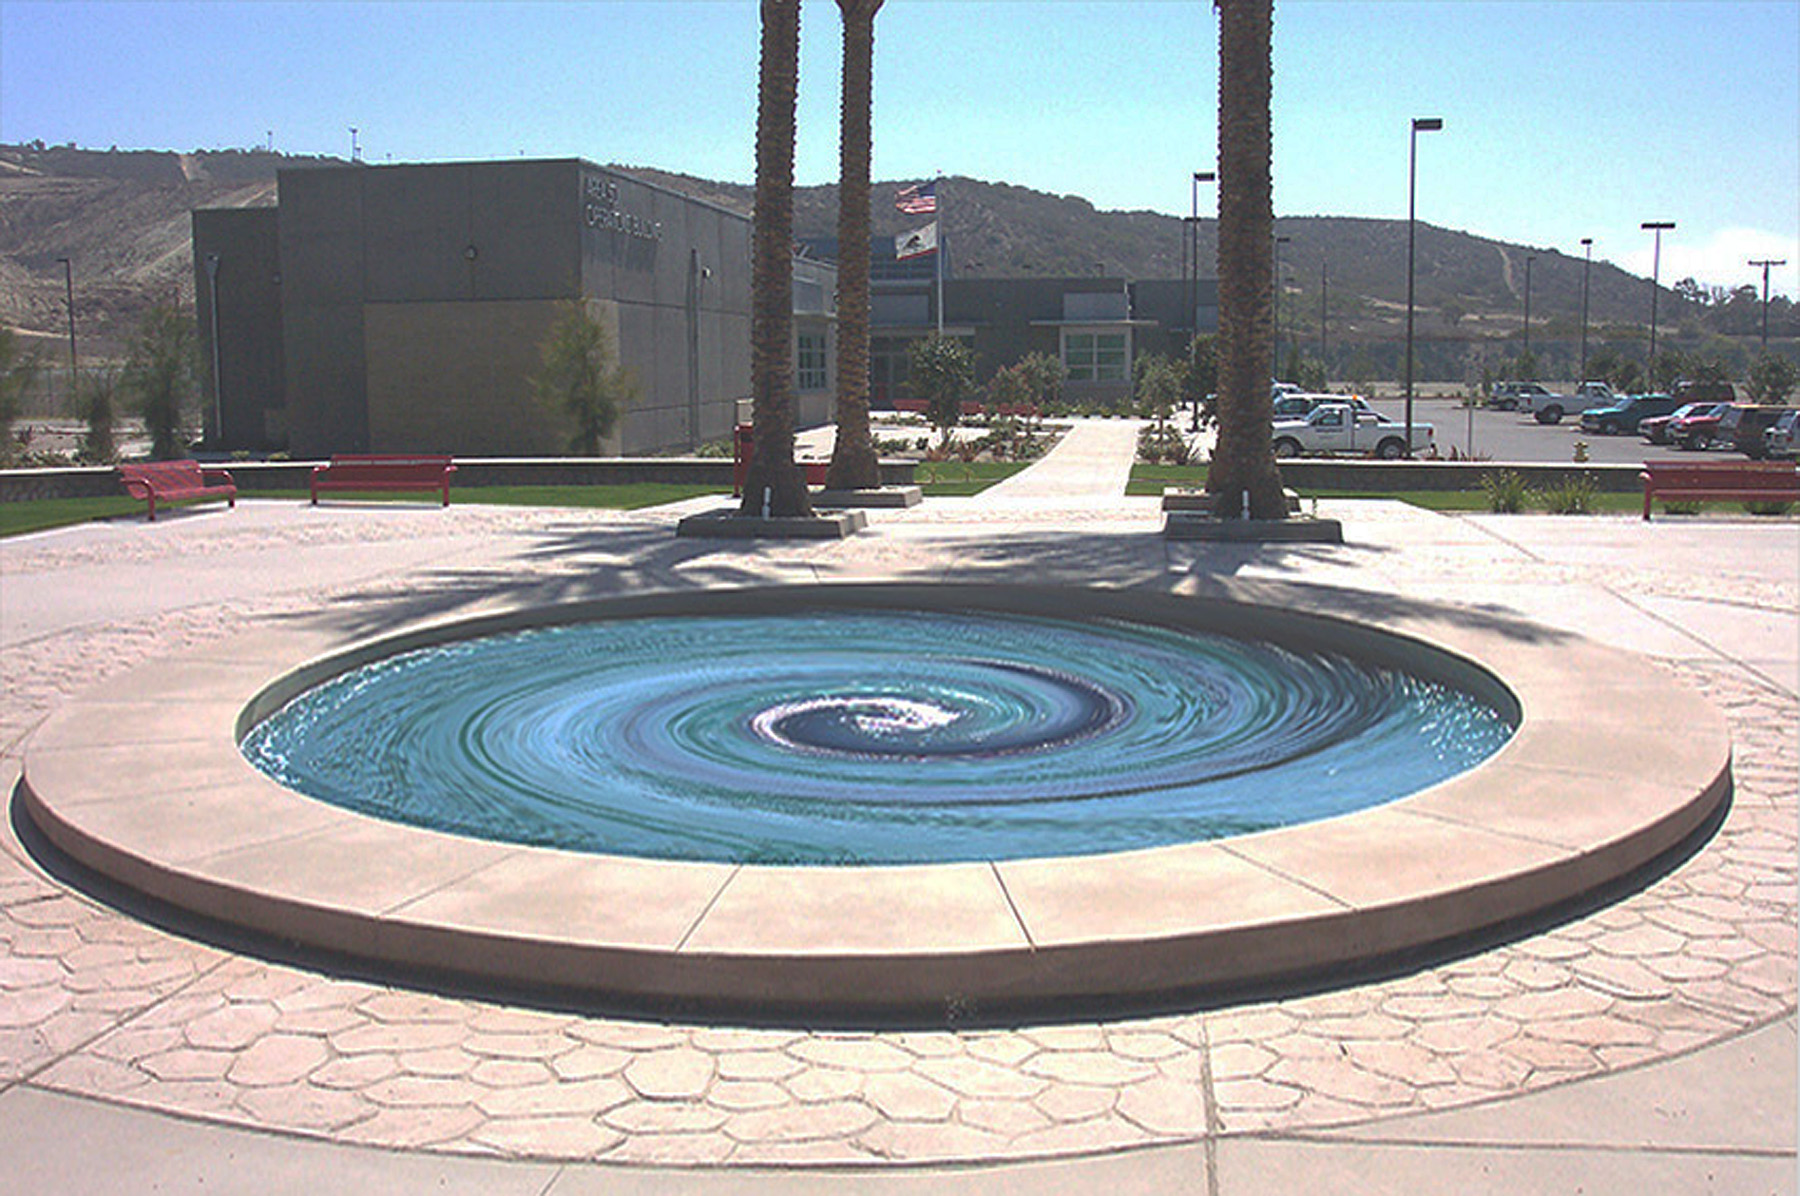 Vortex - South Bay Water Reclamation Plant